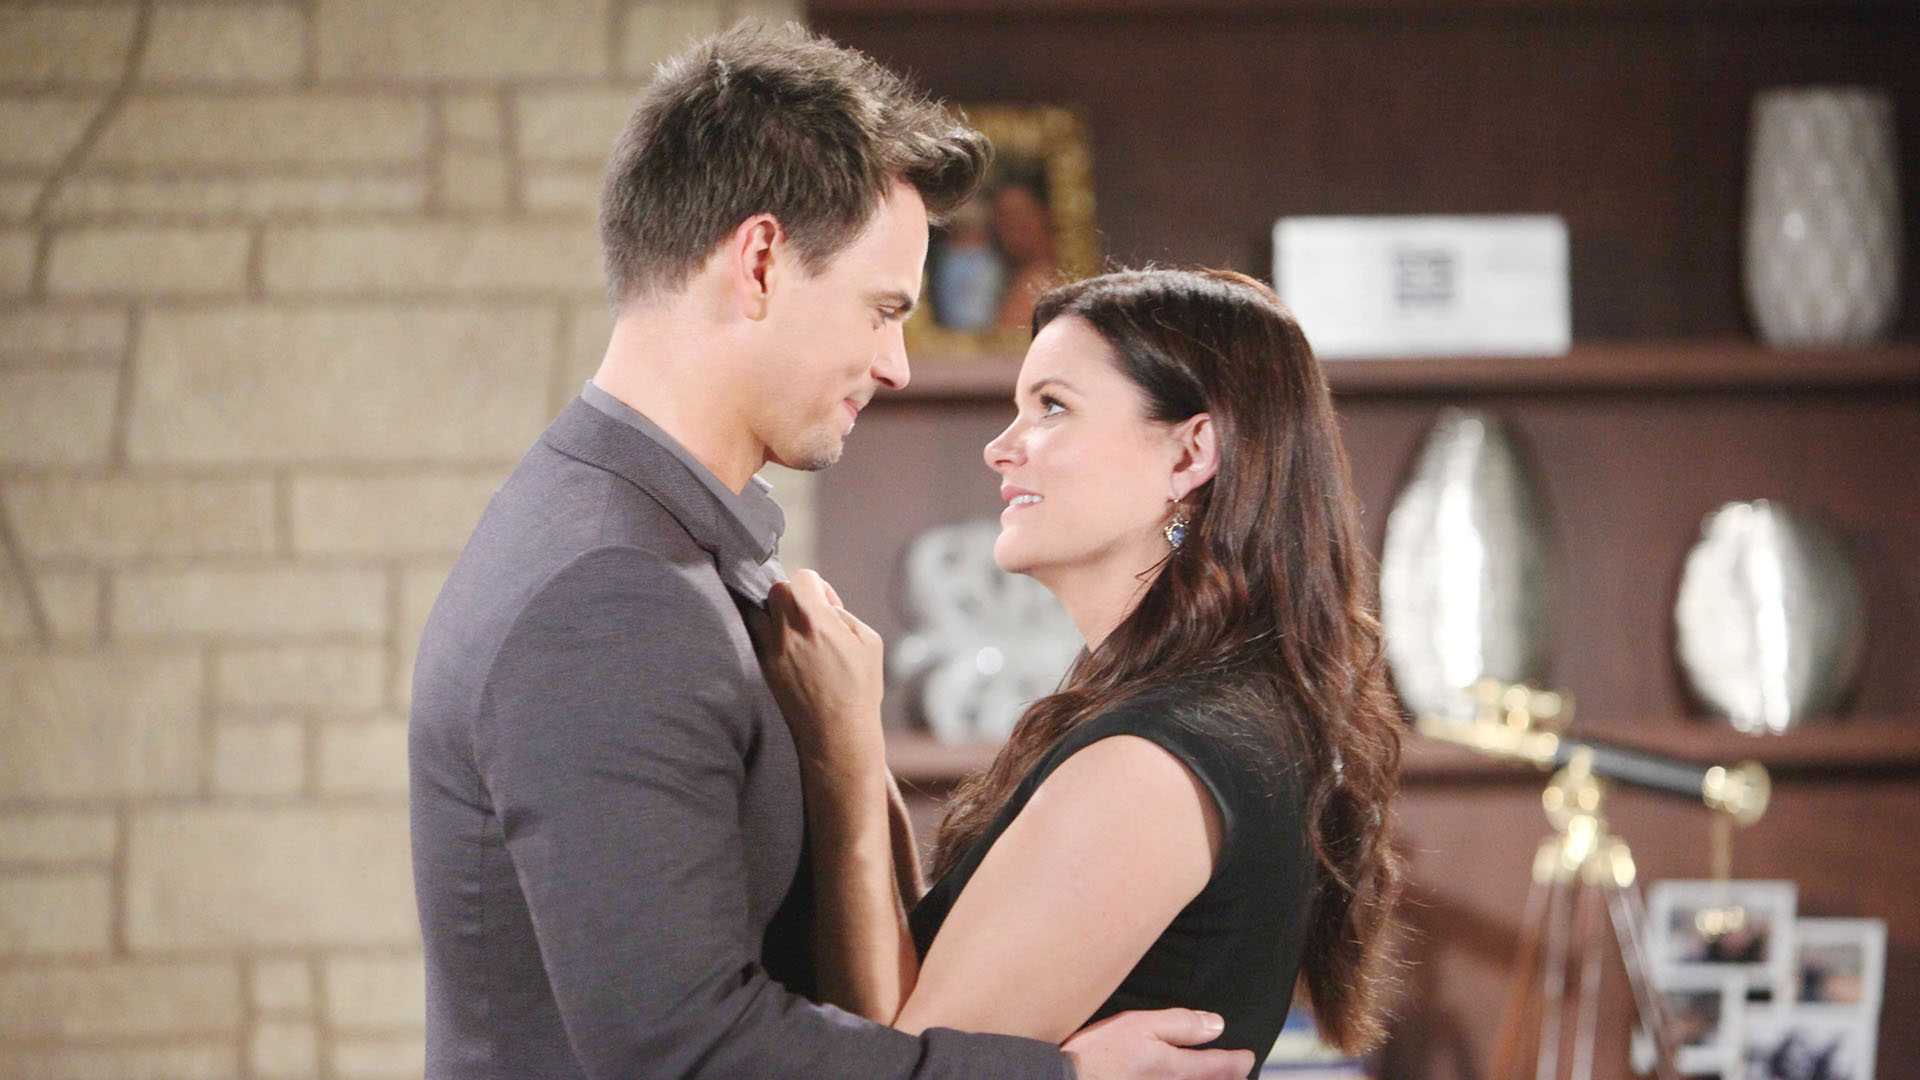 Katie and Wyatt make a realization about their cross-communication as well as their significant feelings for one another.